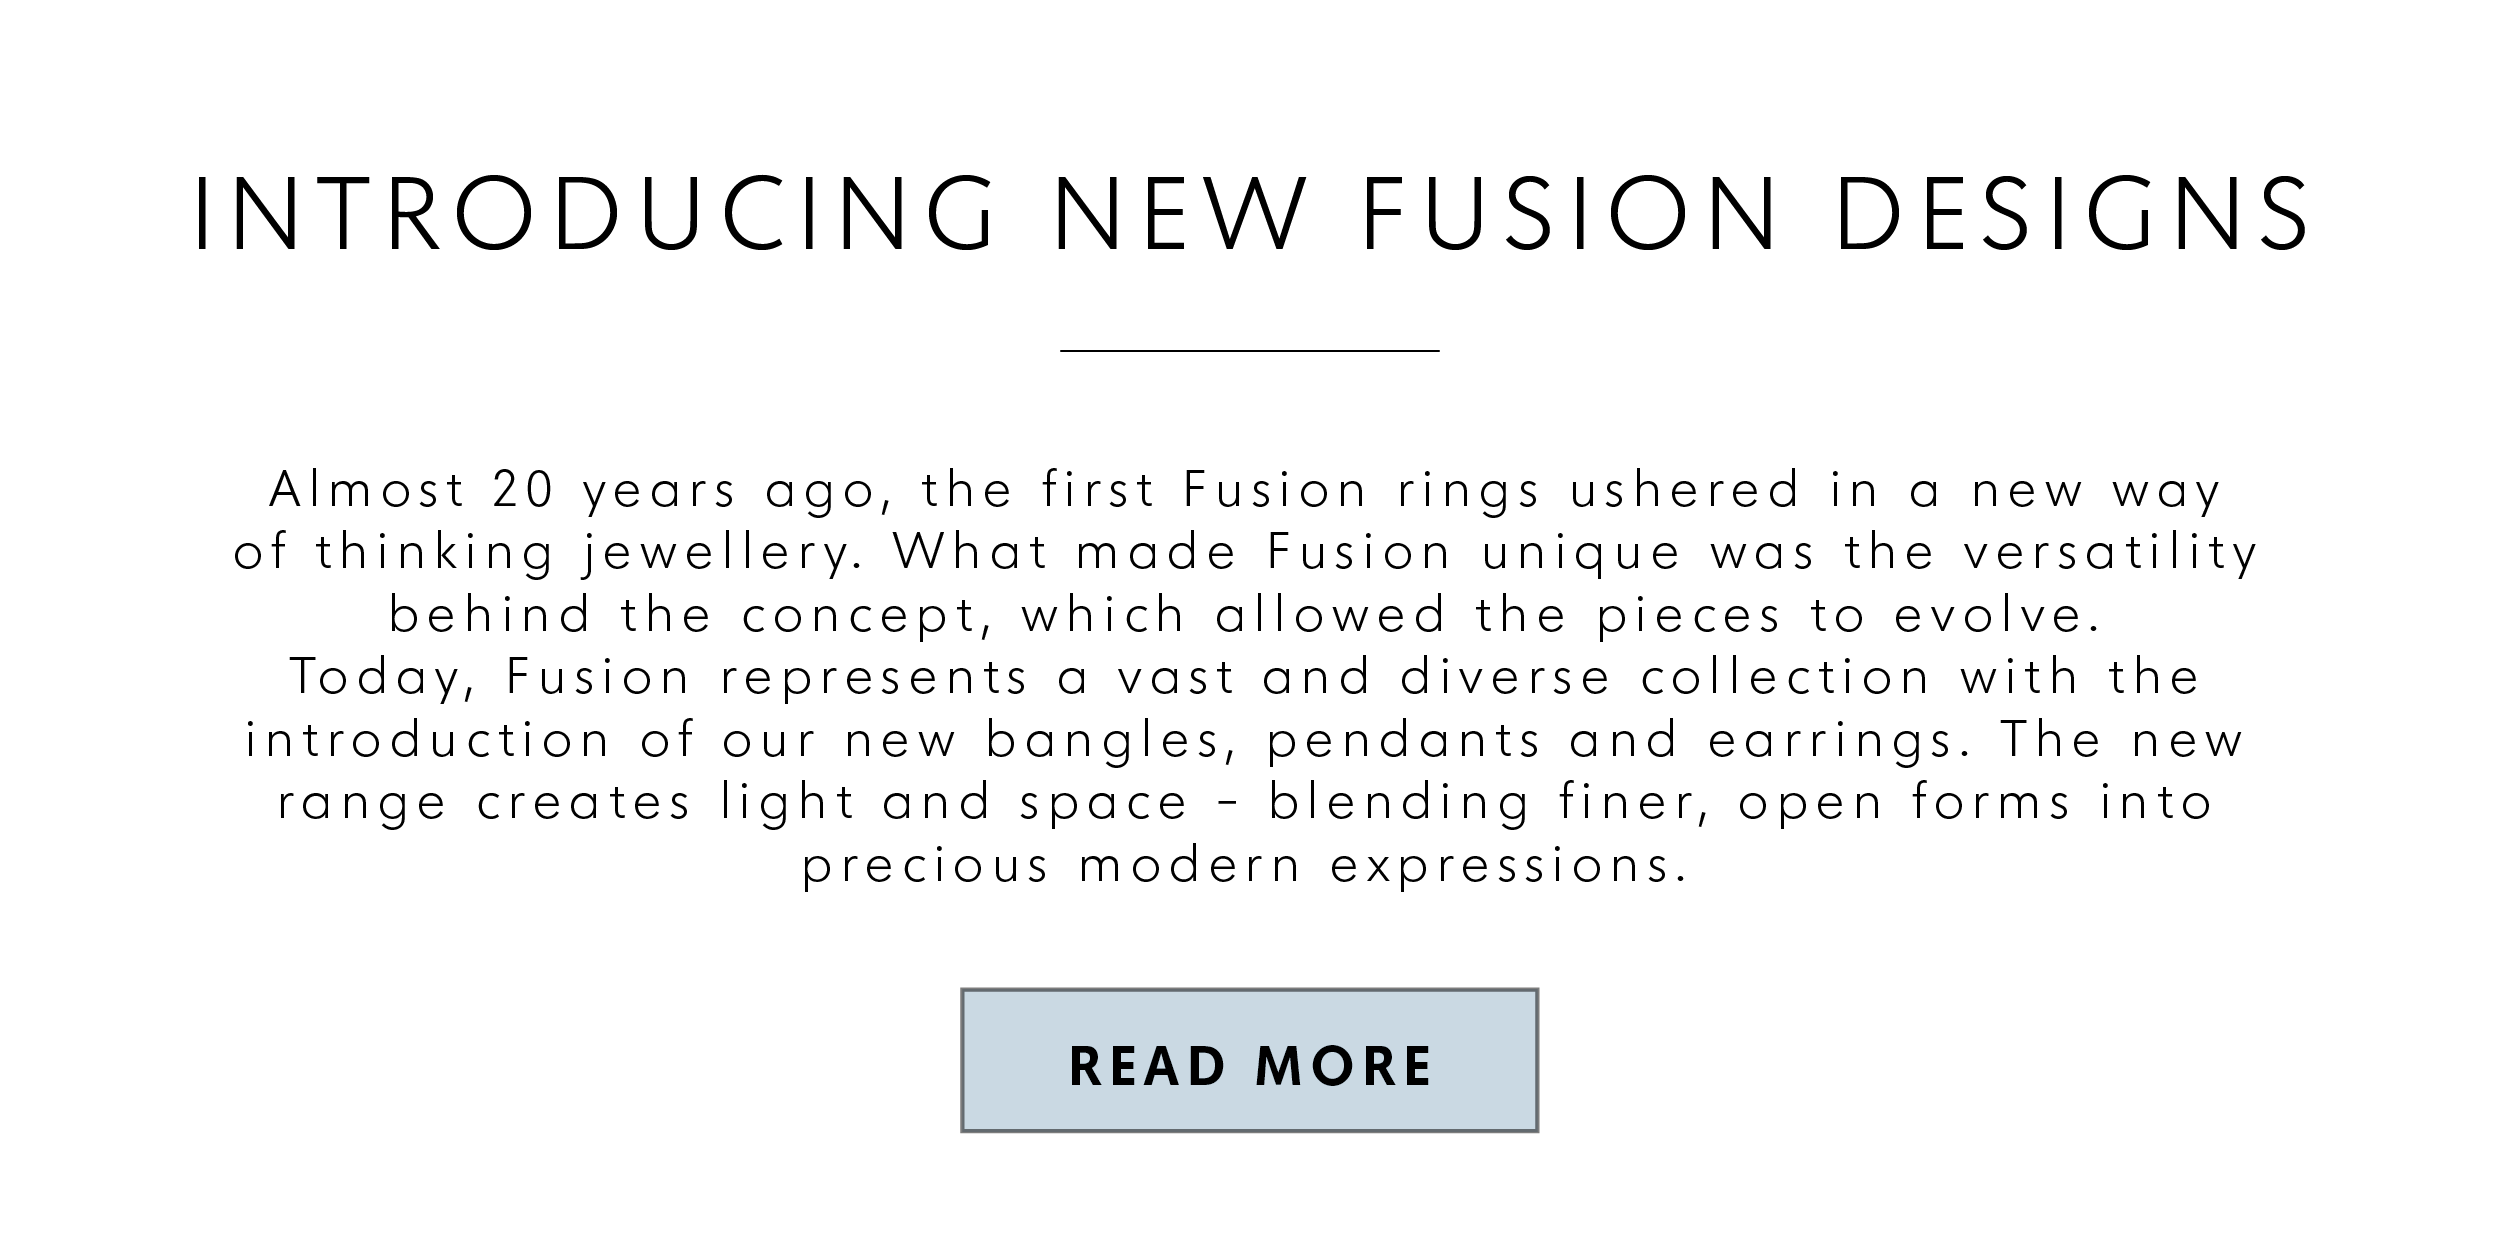 Introducing new Fusion designs